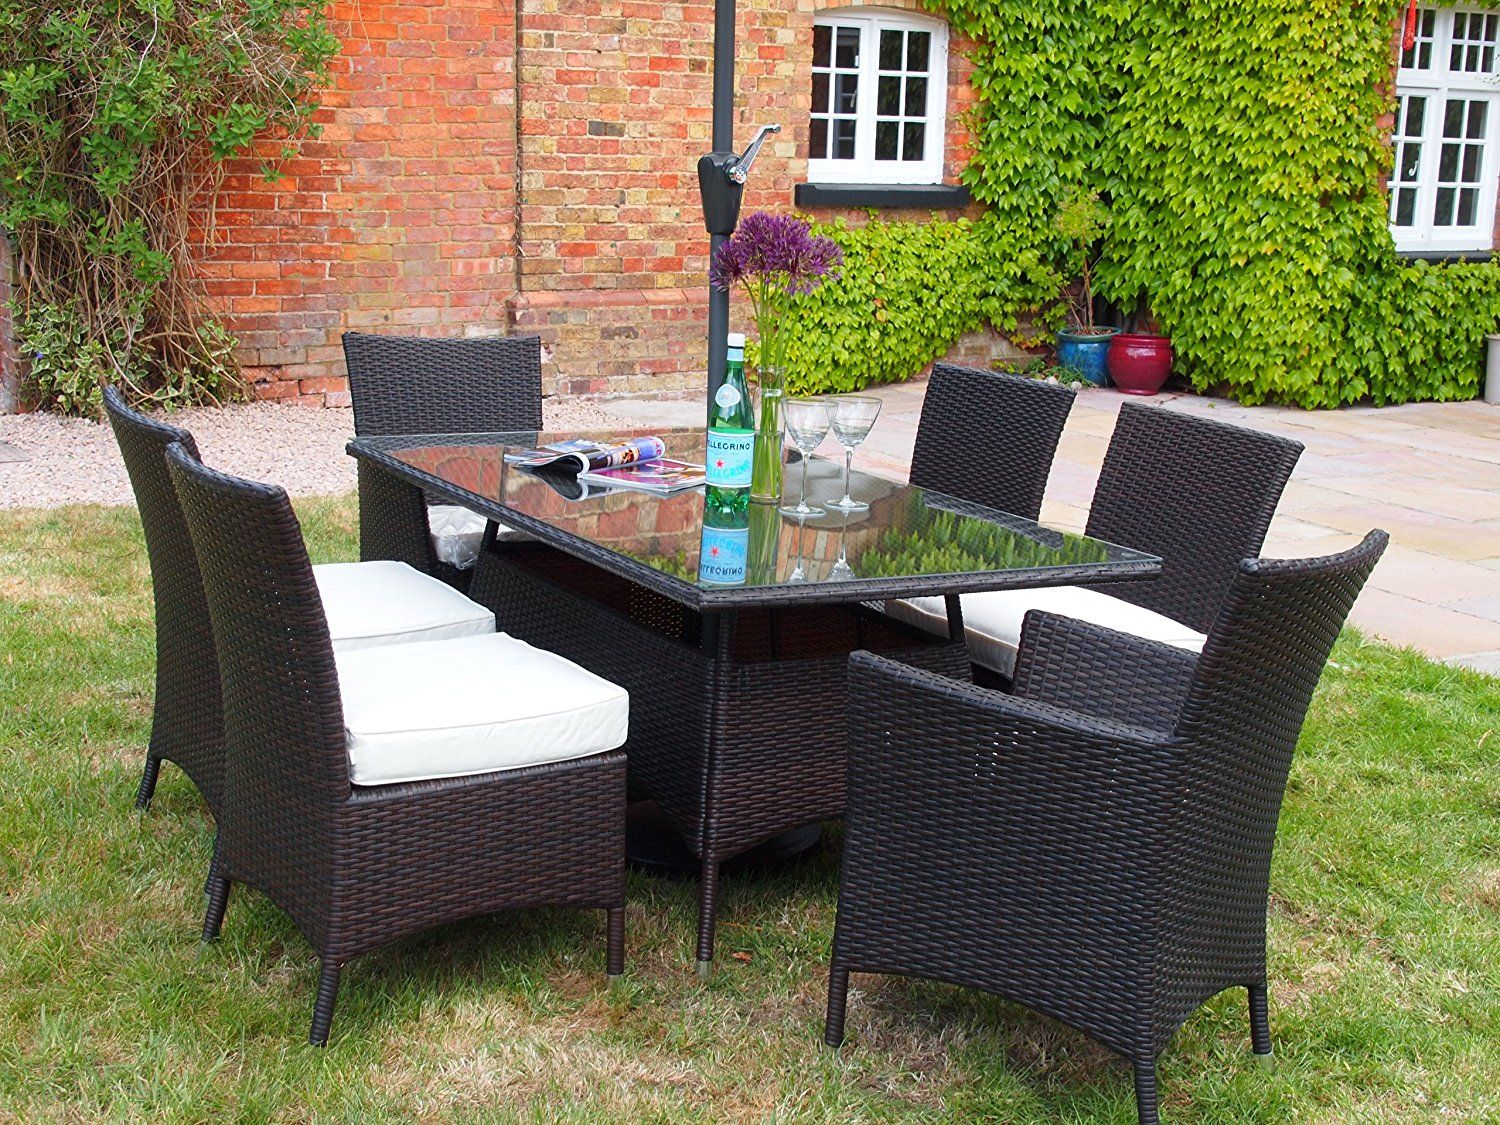 Barcelona Rectangular Grey Rattan Garden Furniture Table and 6 Chairs  Dining Set  Amazon co. Barcelona Rectangular Grey Rattan Garden Furniture Table and 6